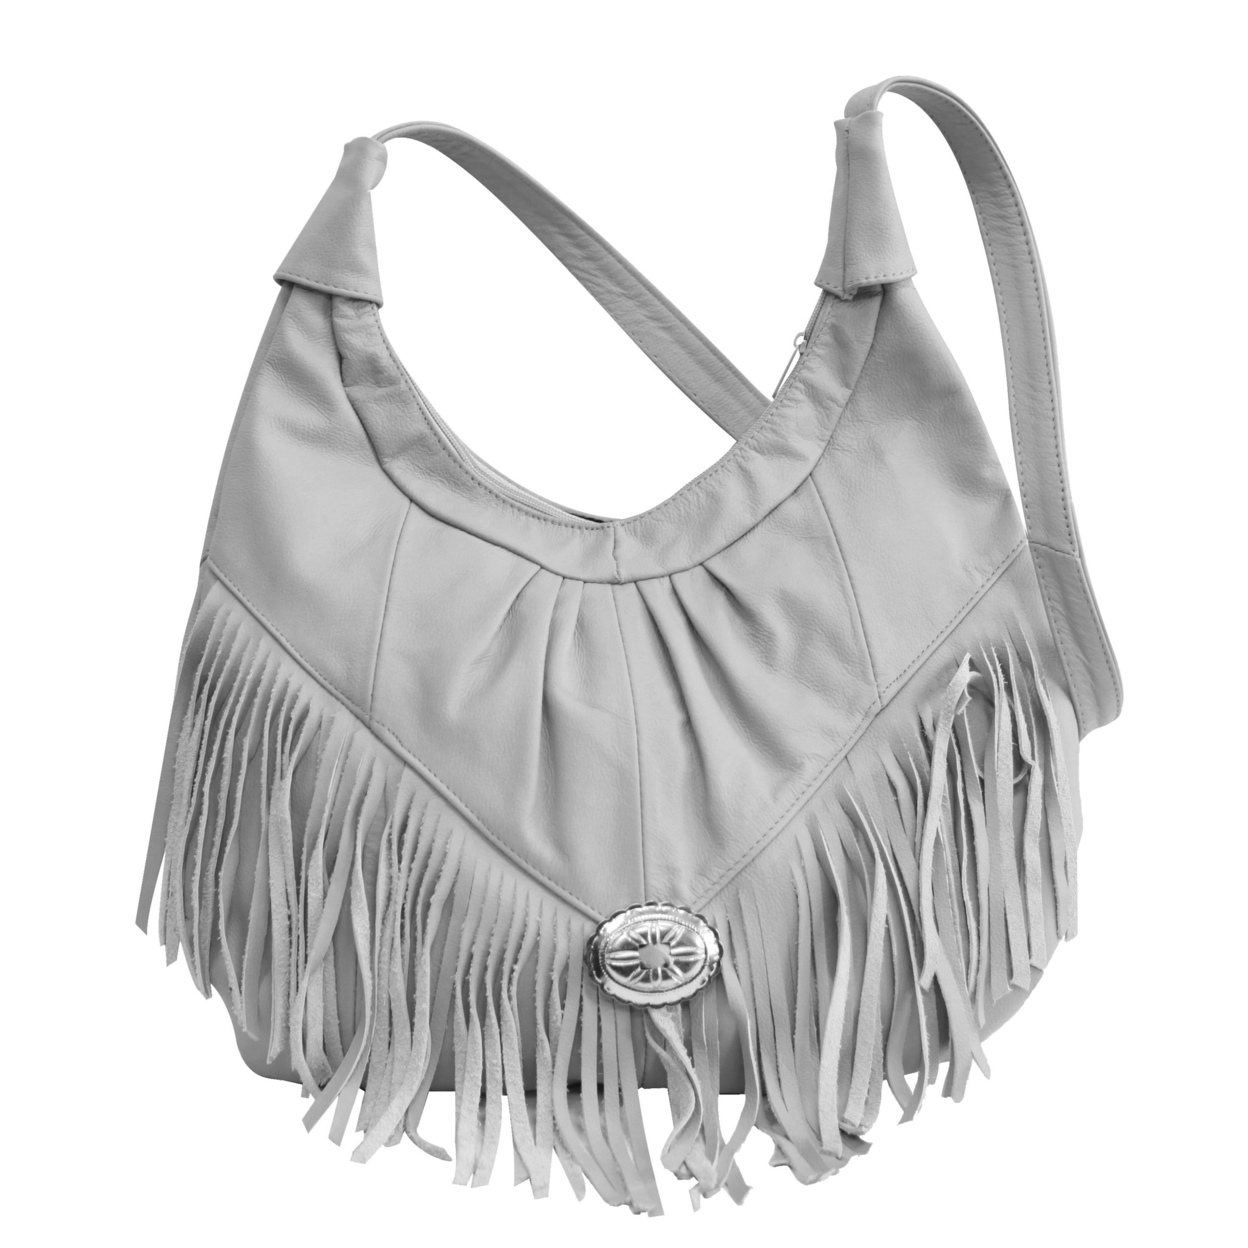 Fringed Leather Bag - Soft Geniune Leather Grey Color - Grey 55dc9df7a2771ca3658b5a8e